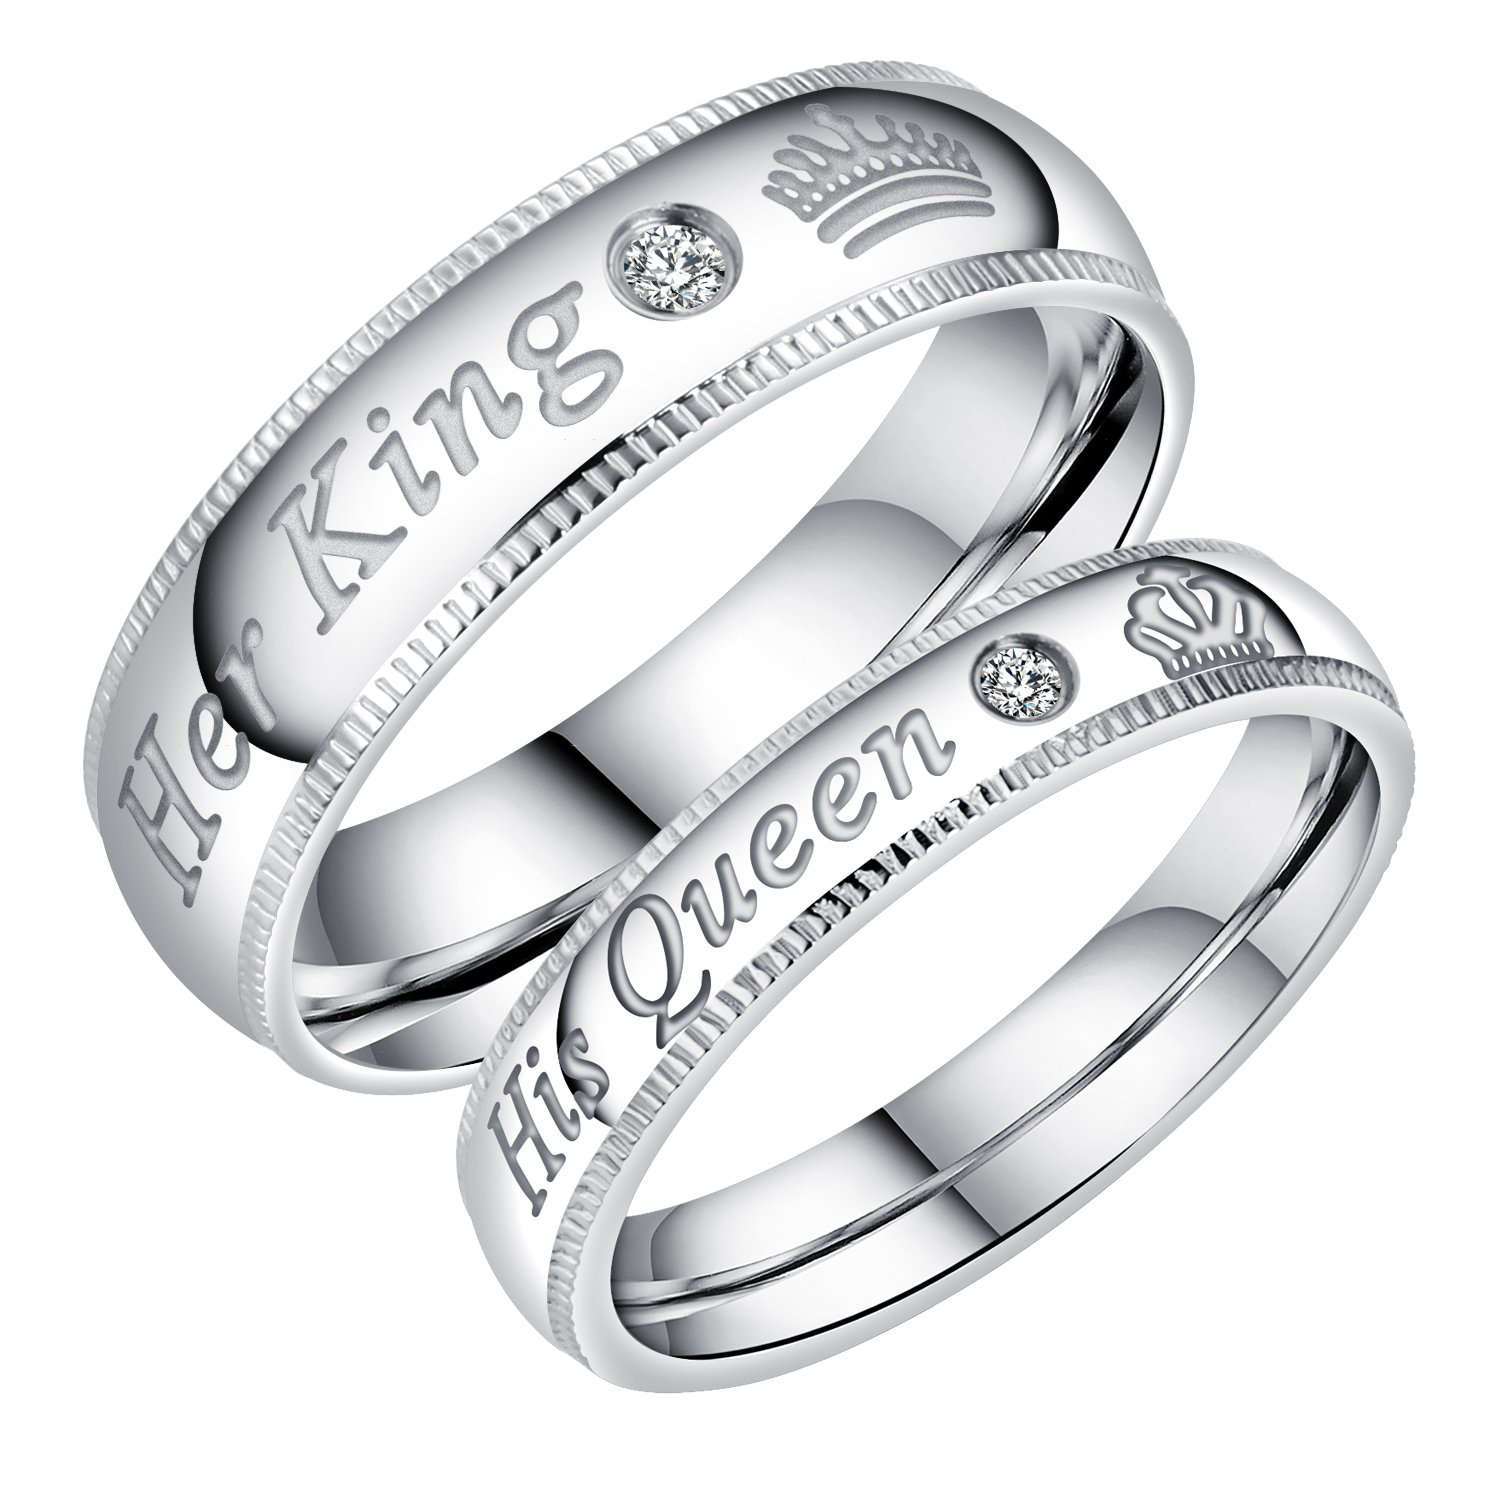 opk stainless steel her king his queen couple rings engagement 26 Year Wedding Anniversary opk stainless steel her king his queen couple rings engagement promise rings male 10 female 4 1 pair amazon